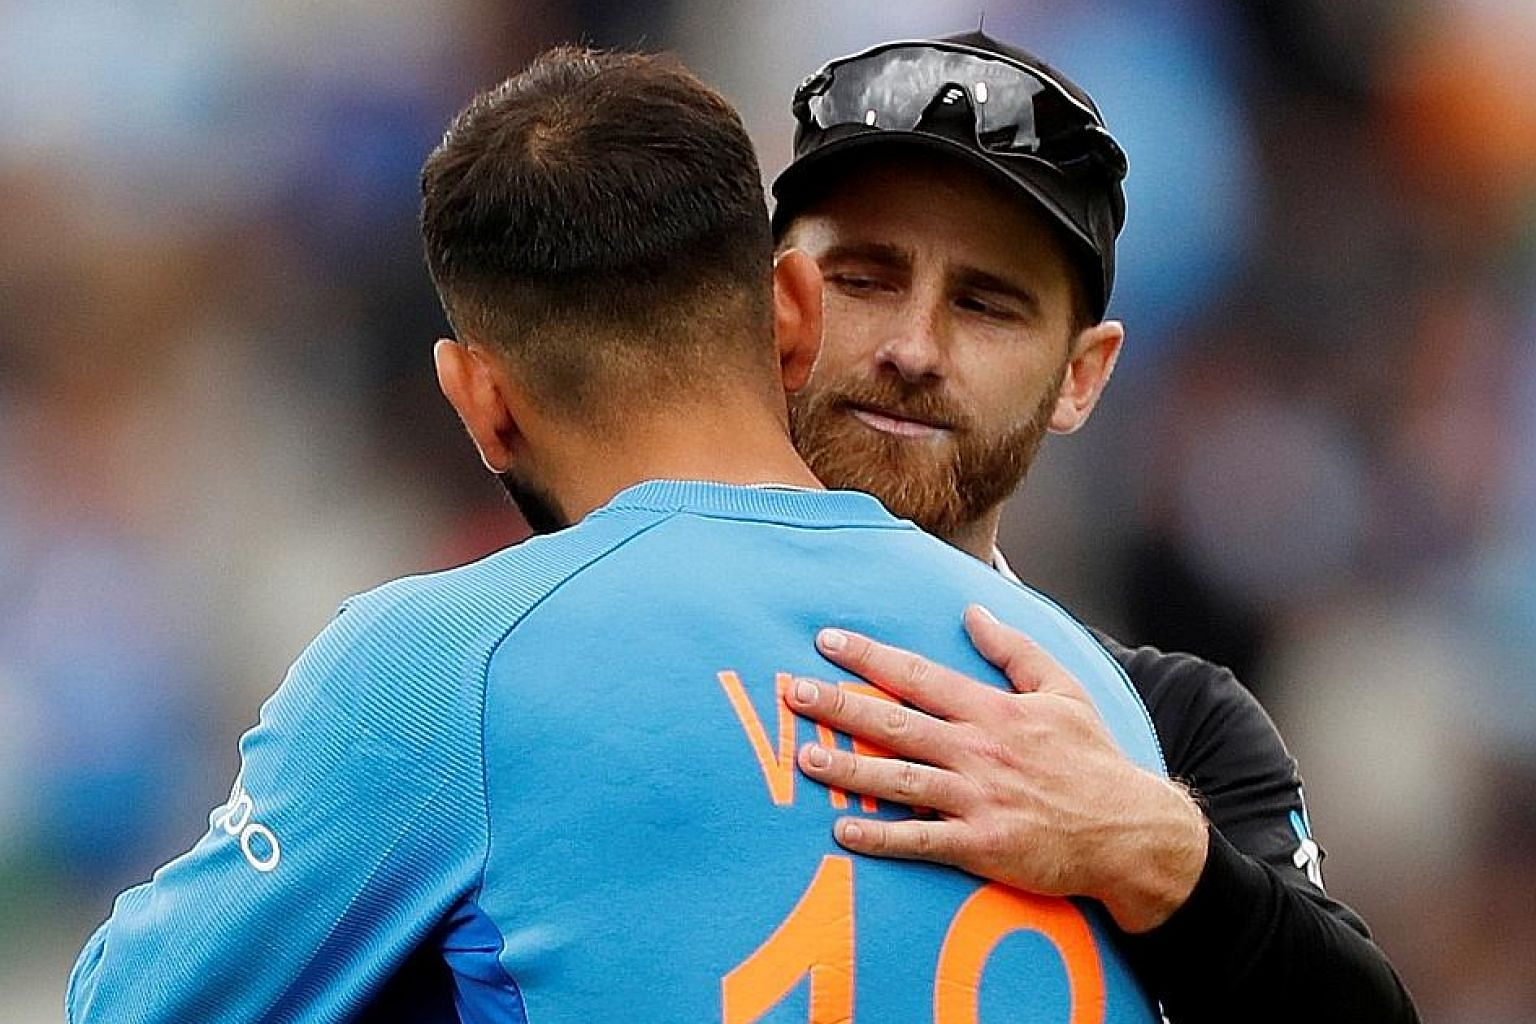 New Zealand captain Kane Williamson and his India counterpart Virat Kohli hug after the Black Caps won their rain-affected semi-final on Wednesday at Old Trafford by 18 runs. PHOTO: REUTERS